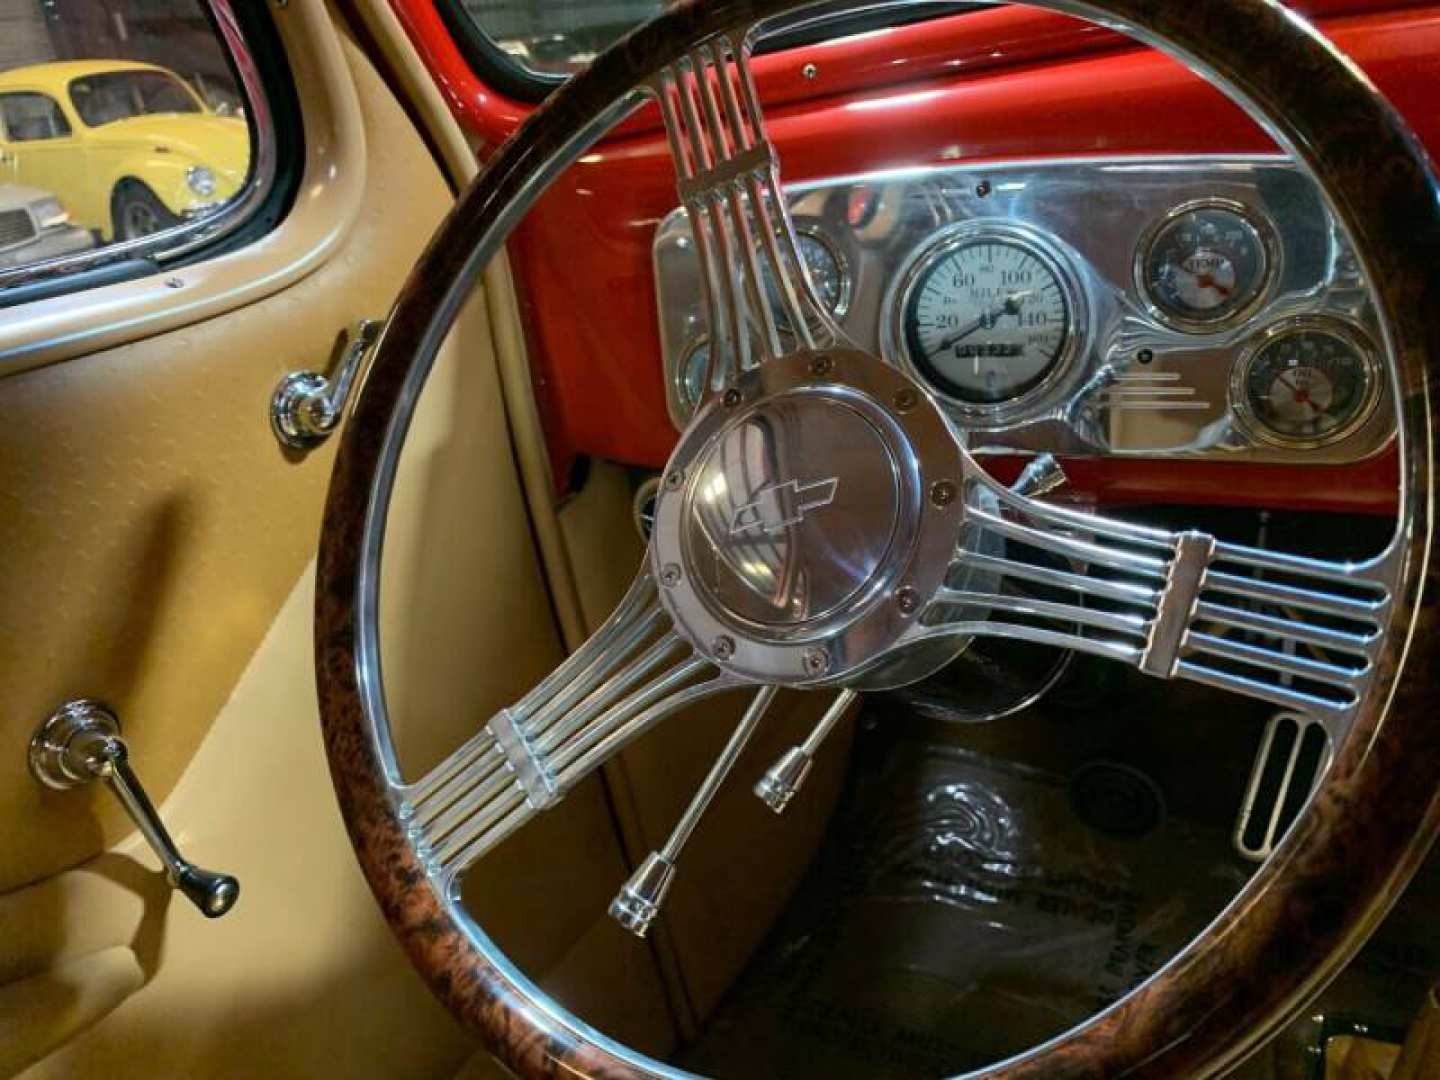 53rd Image of a 1936 CHEVROLET COUPE